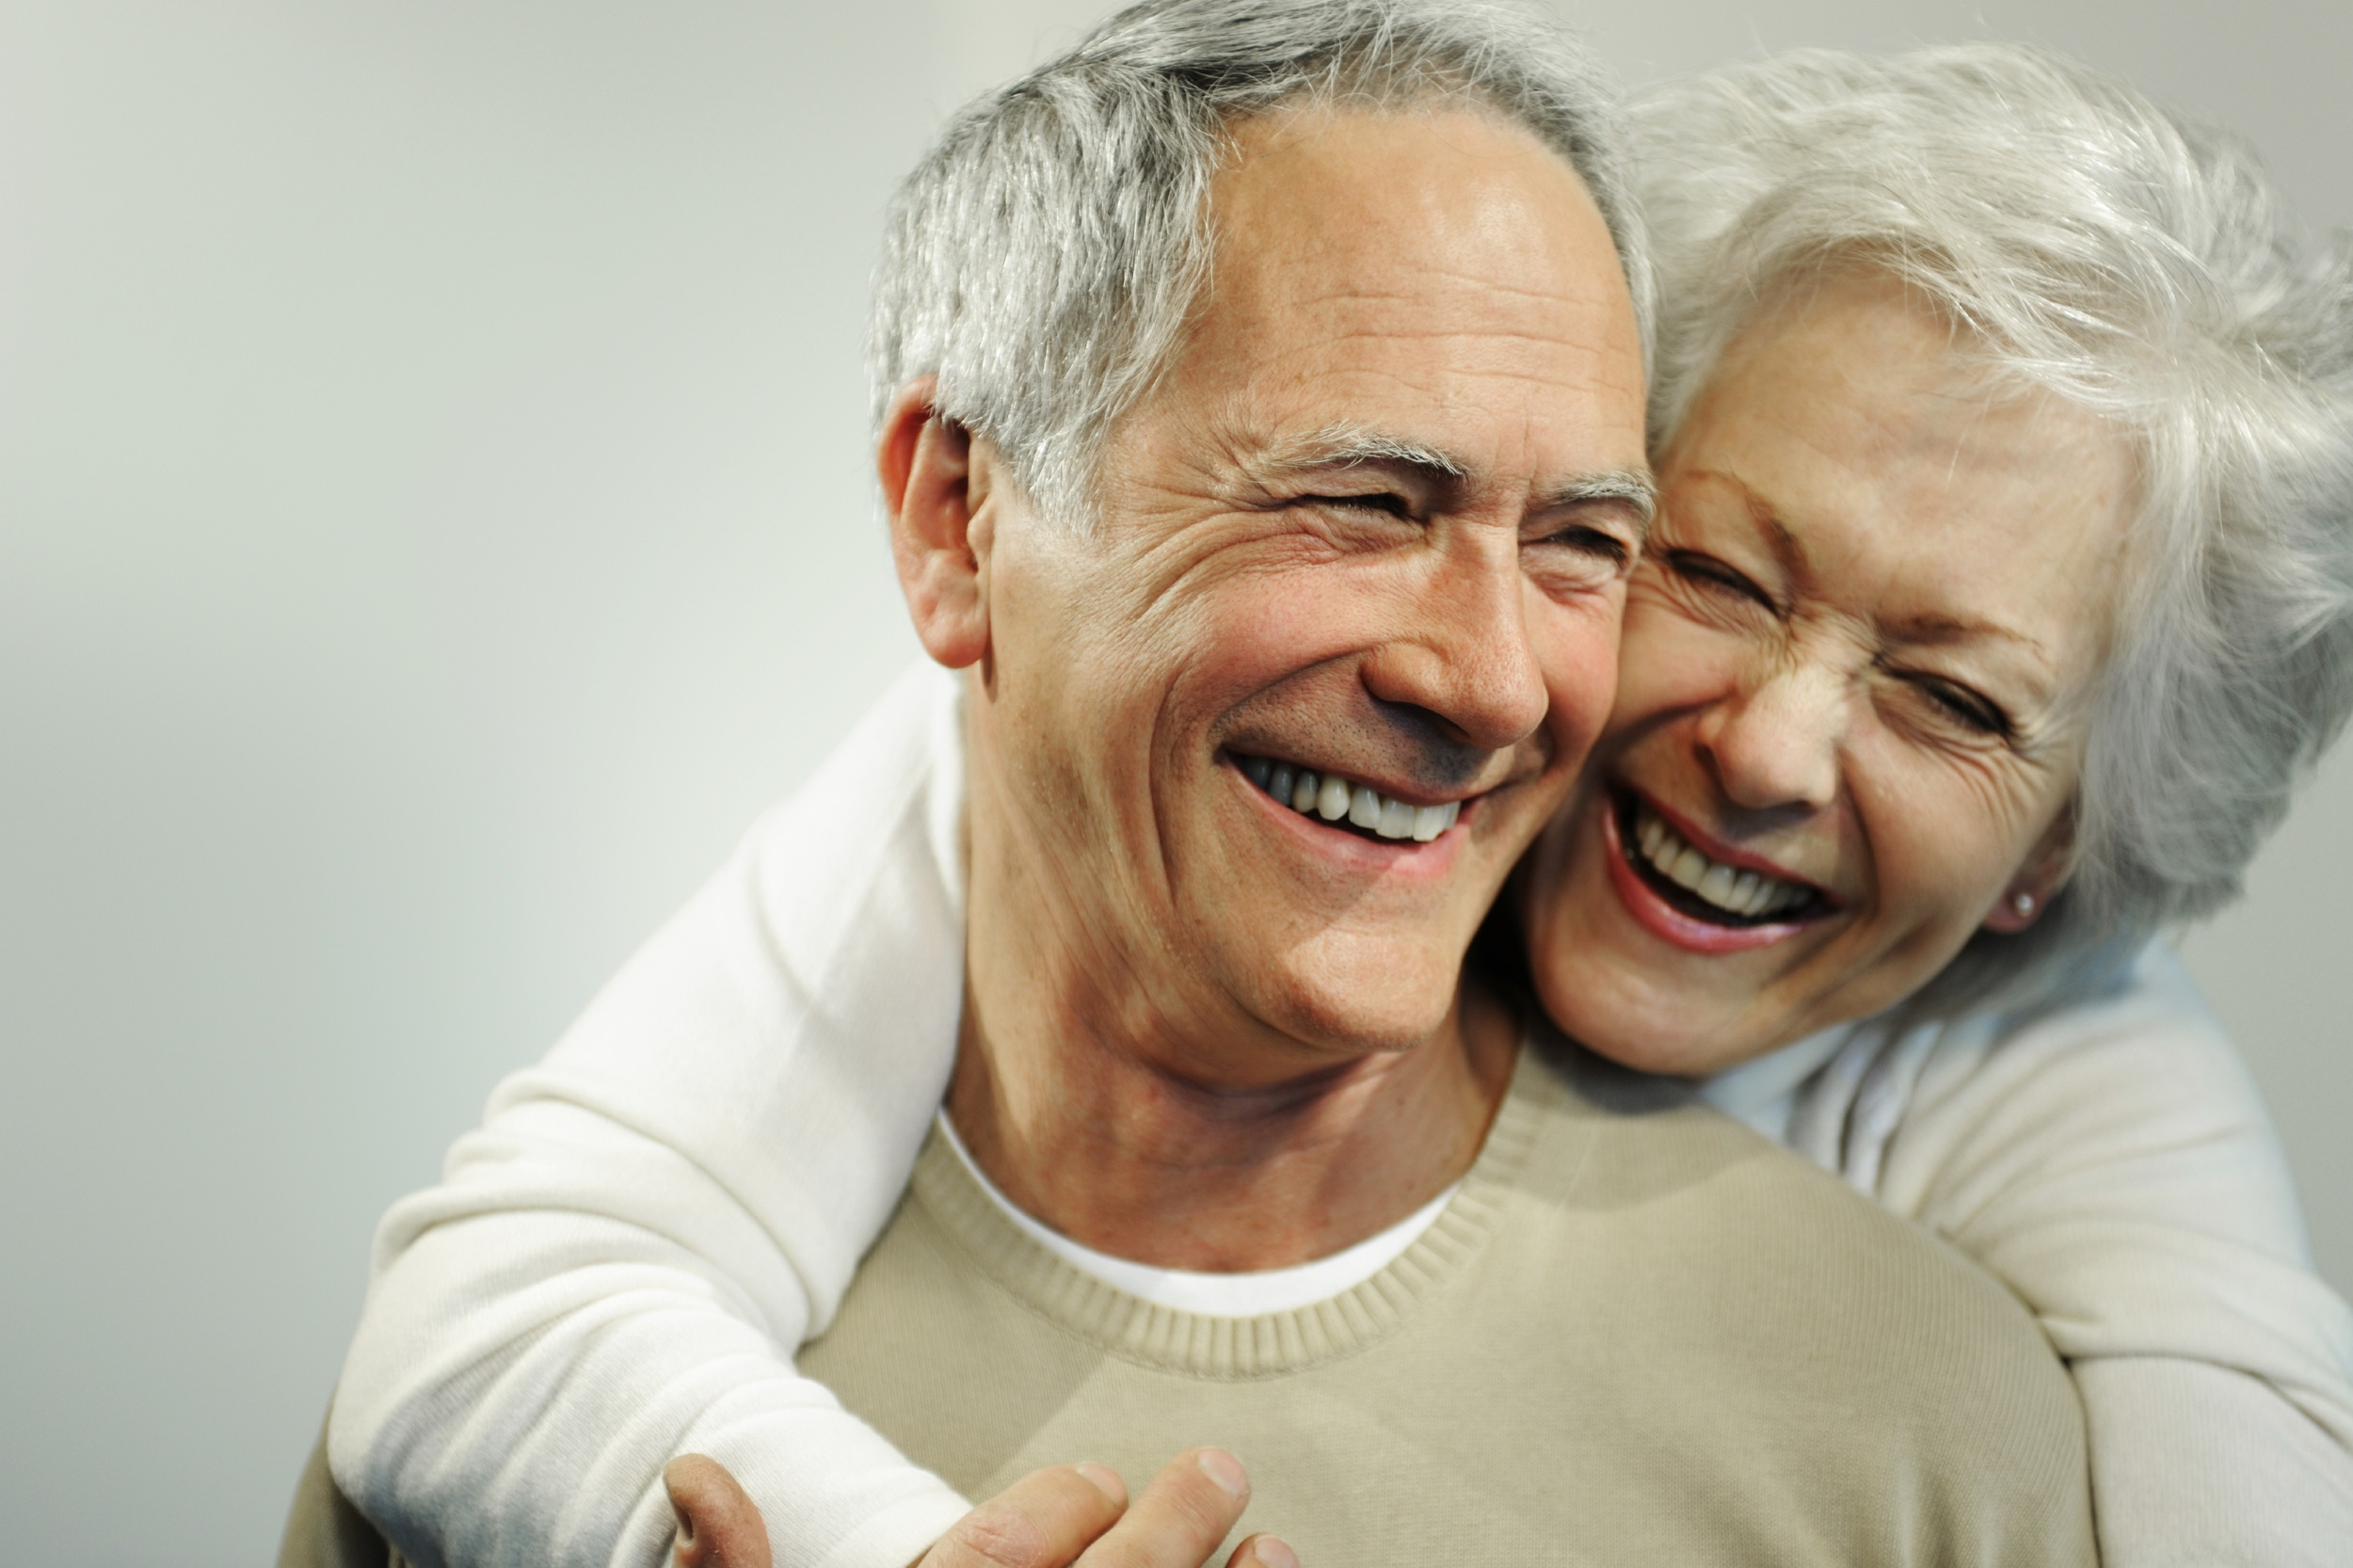 Dr. Barker can restore the function of your teeth with full or partial dentures.